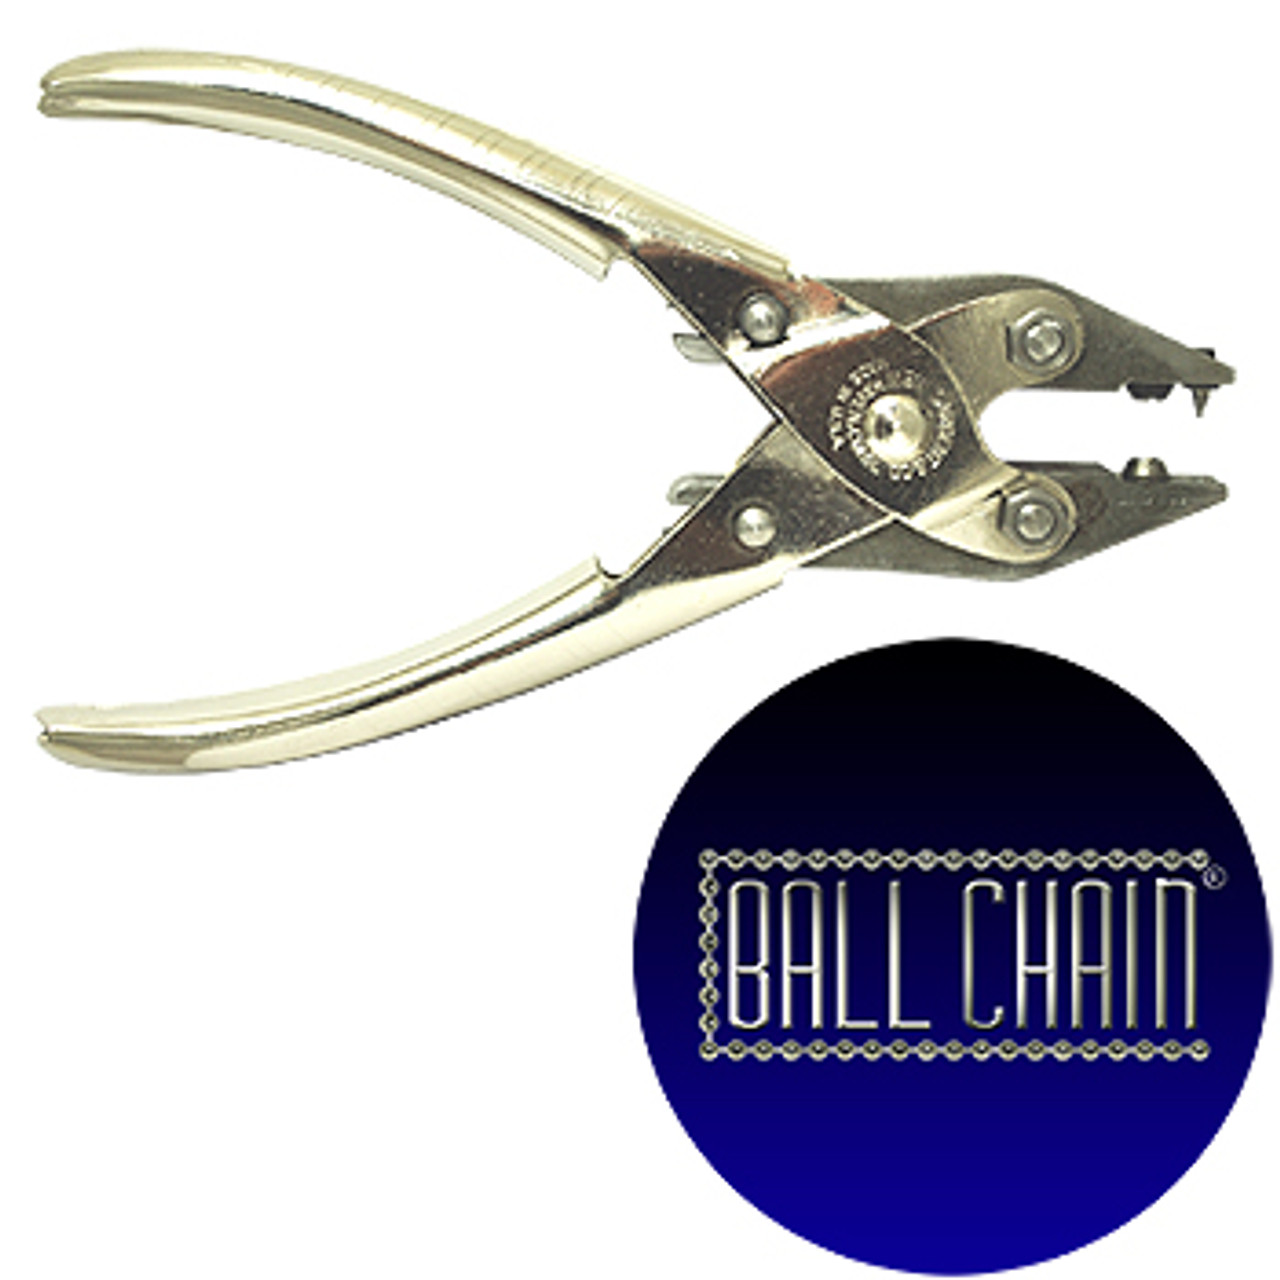 #3 Combination Pliers aka #3 ball chain splicing tool.